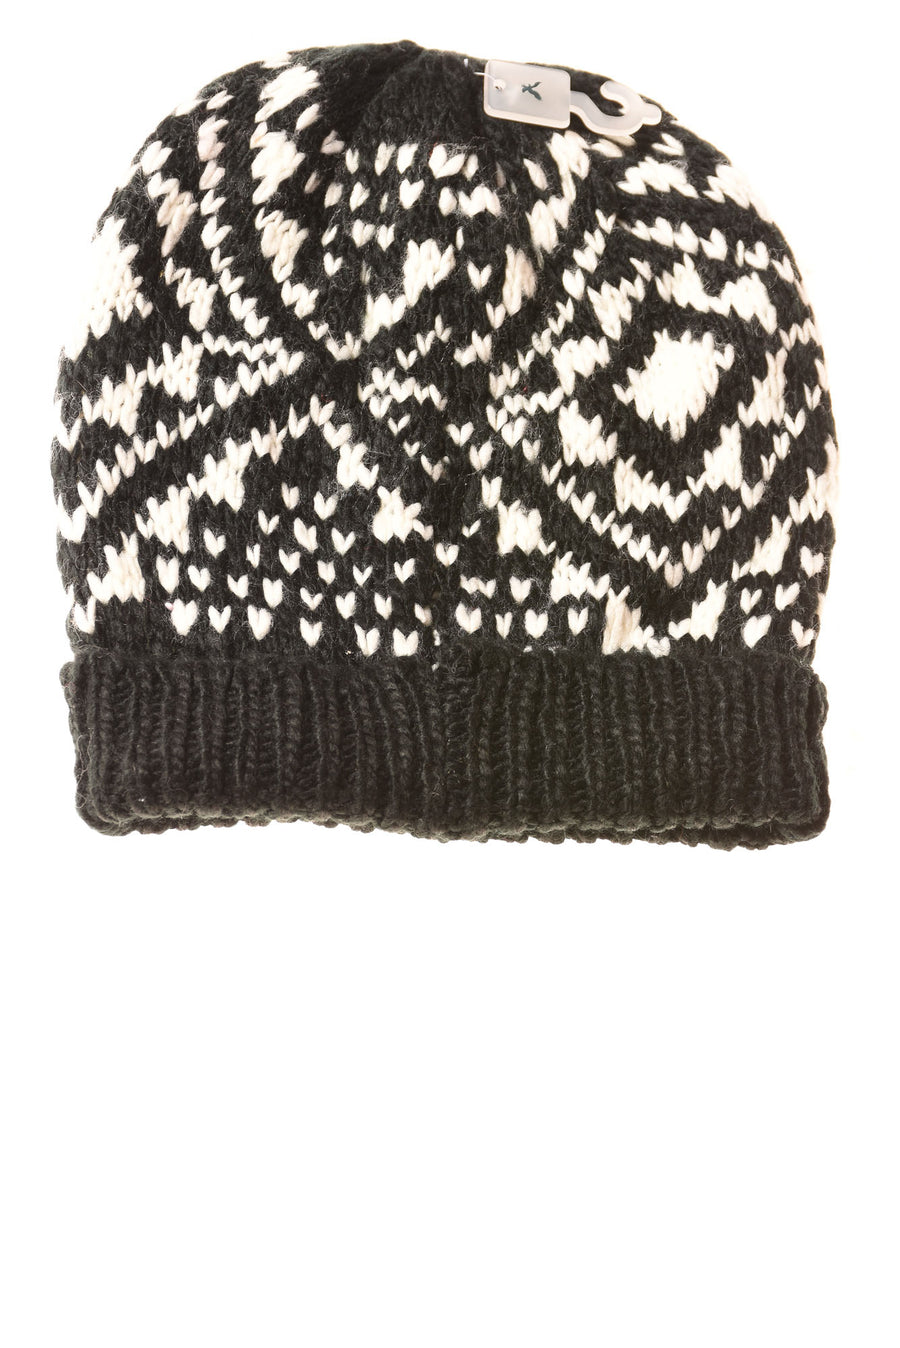 Women's Hat By American Eagle